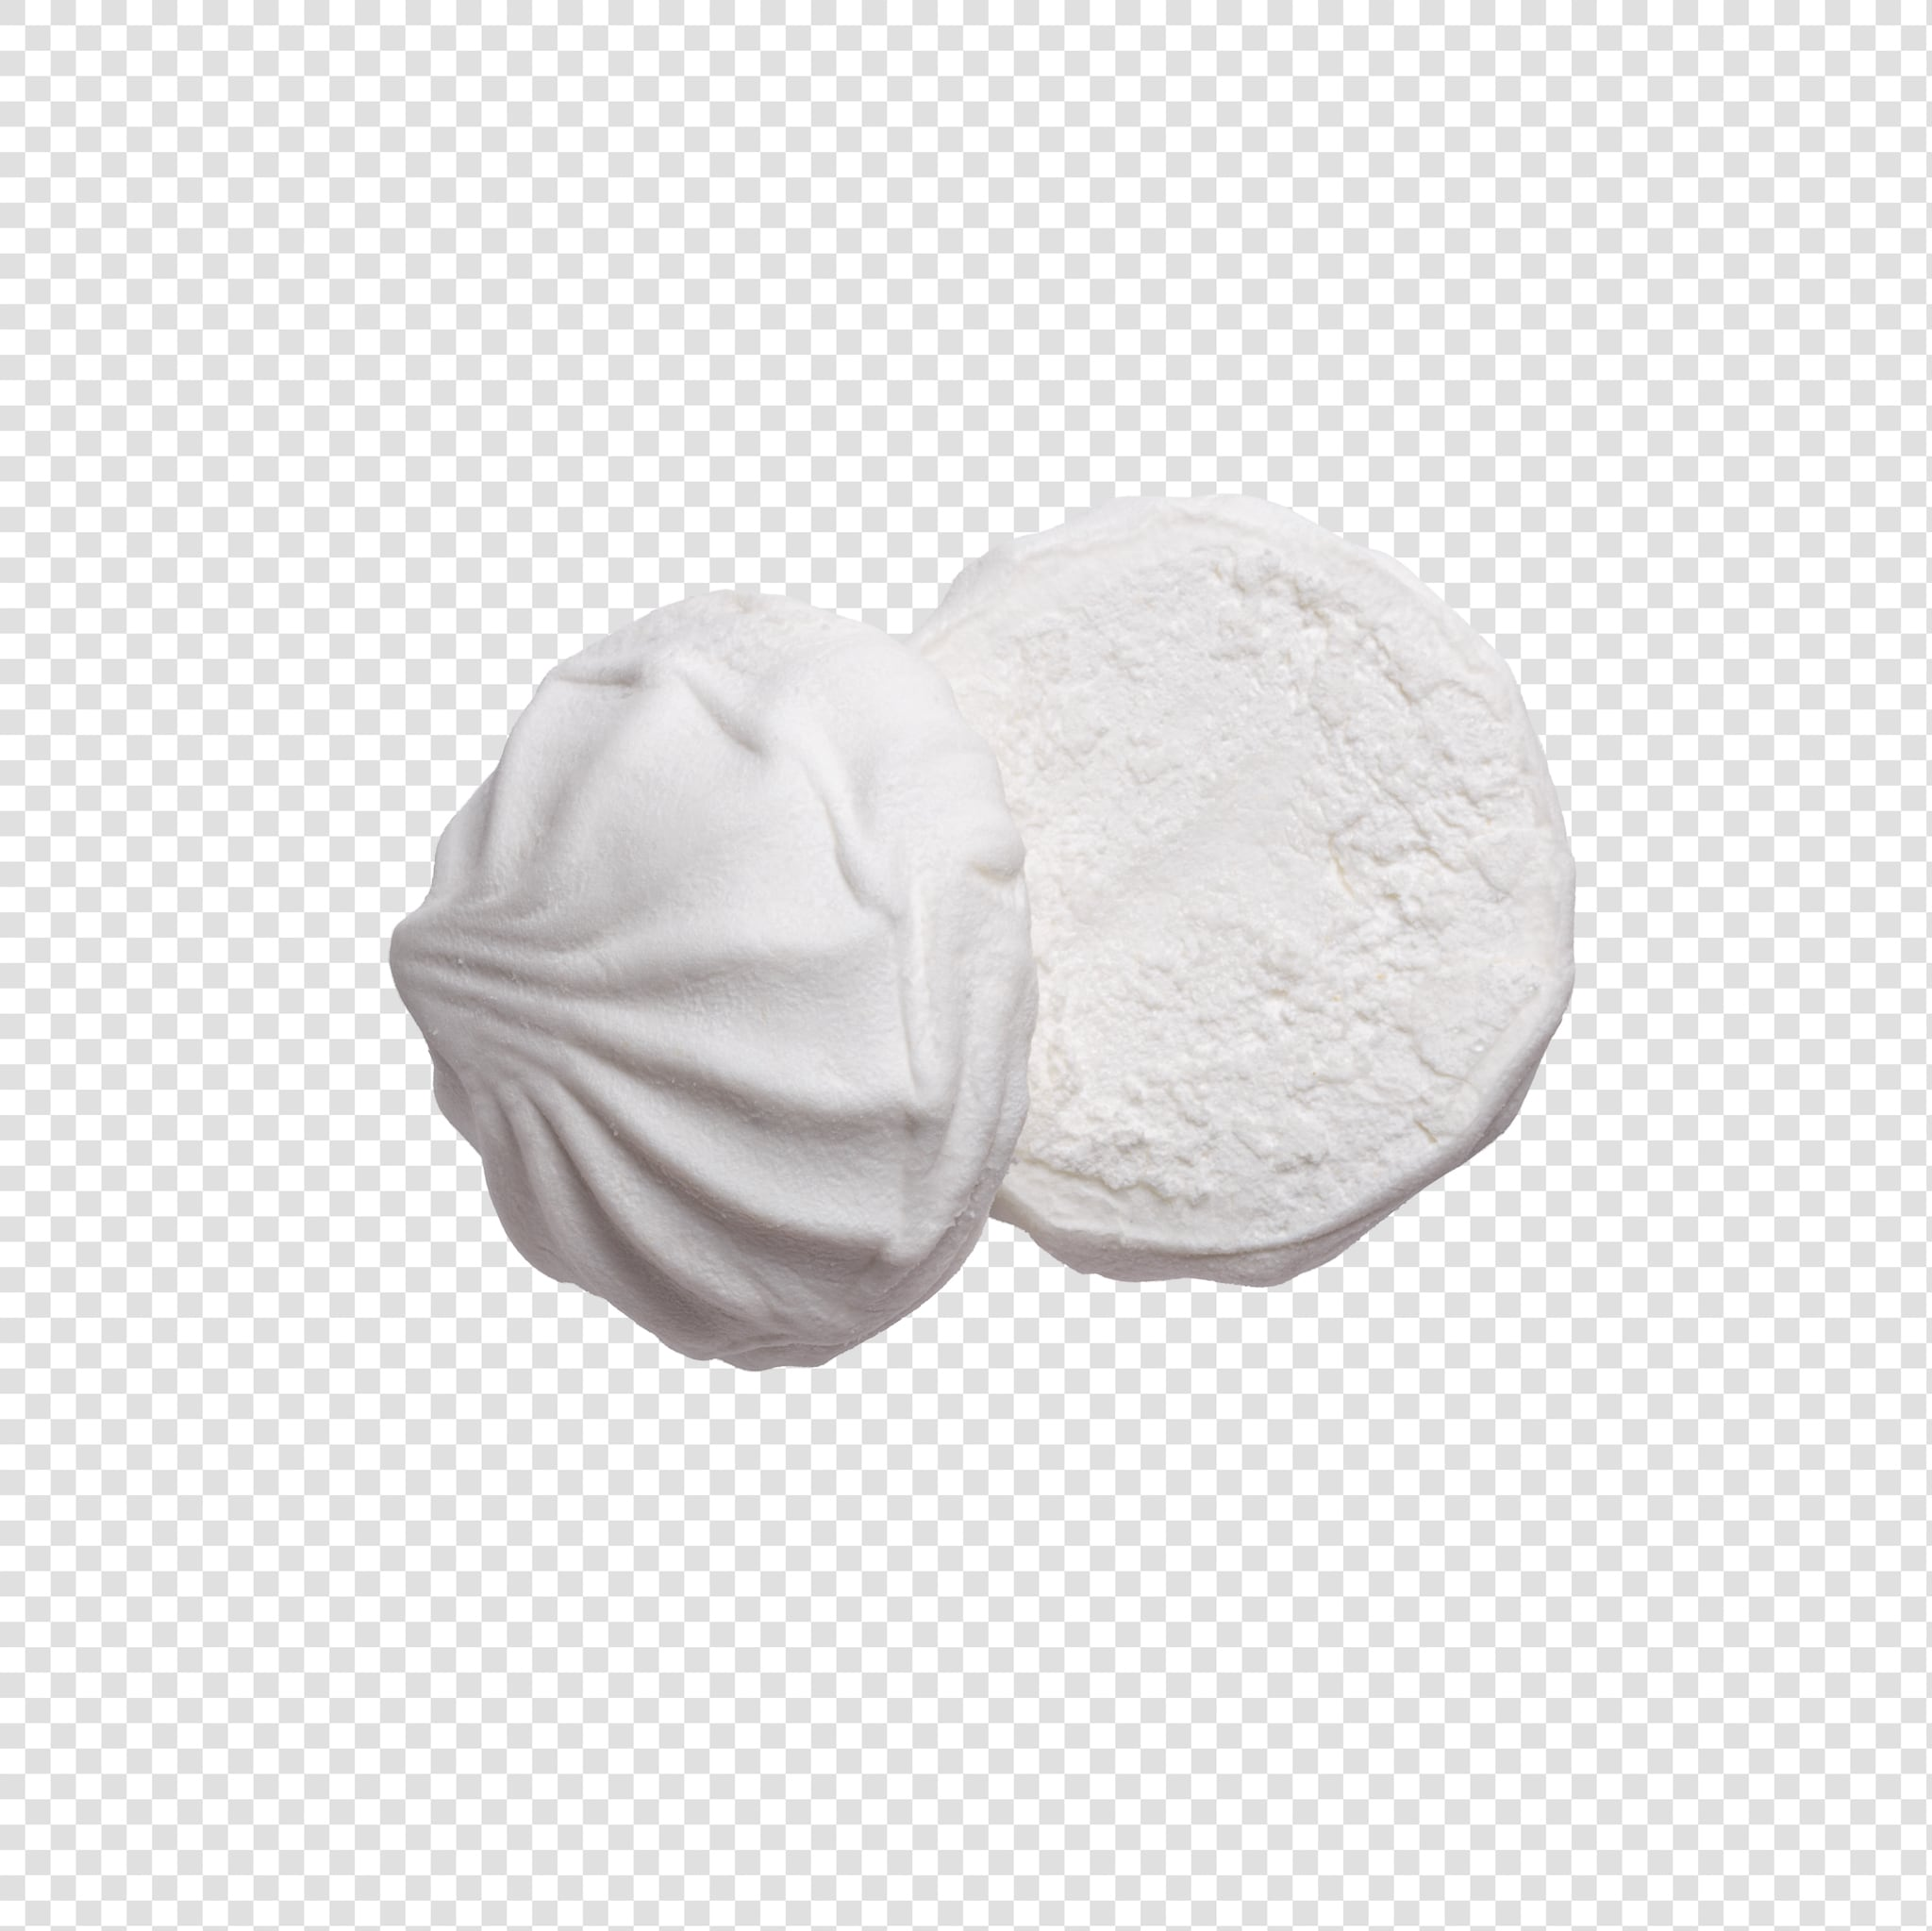 Marshmallow PSD isolated image